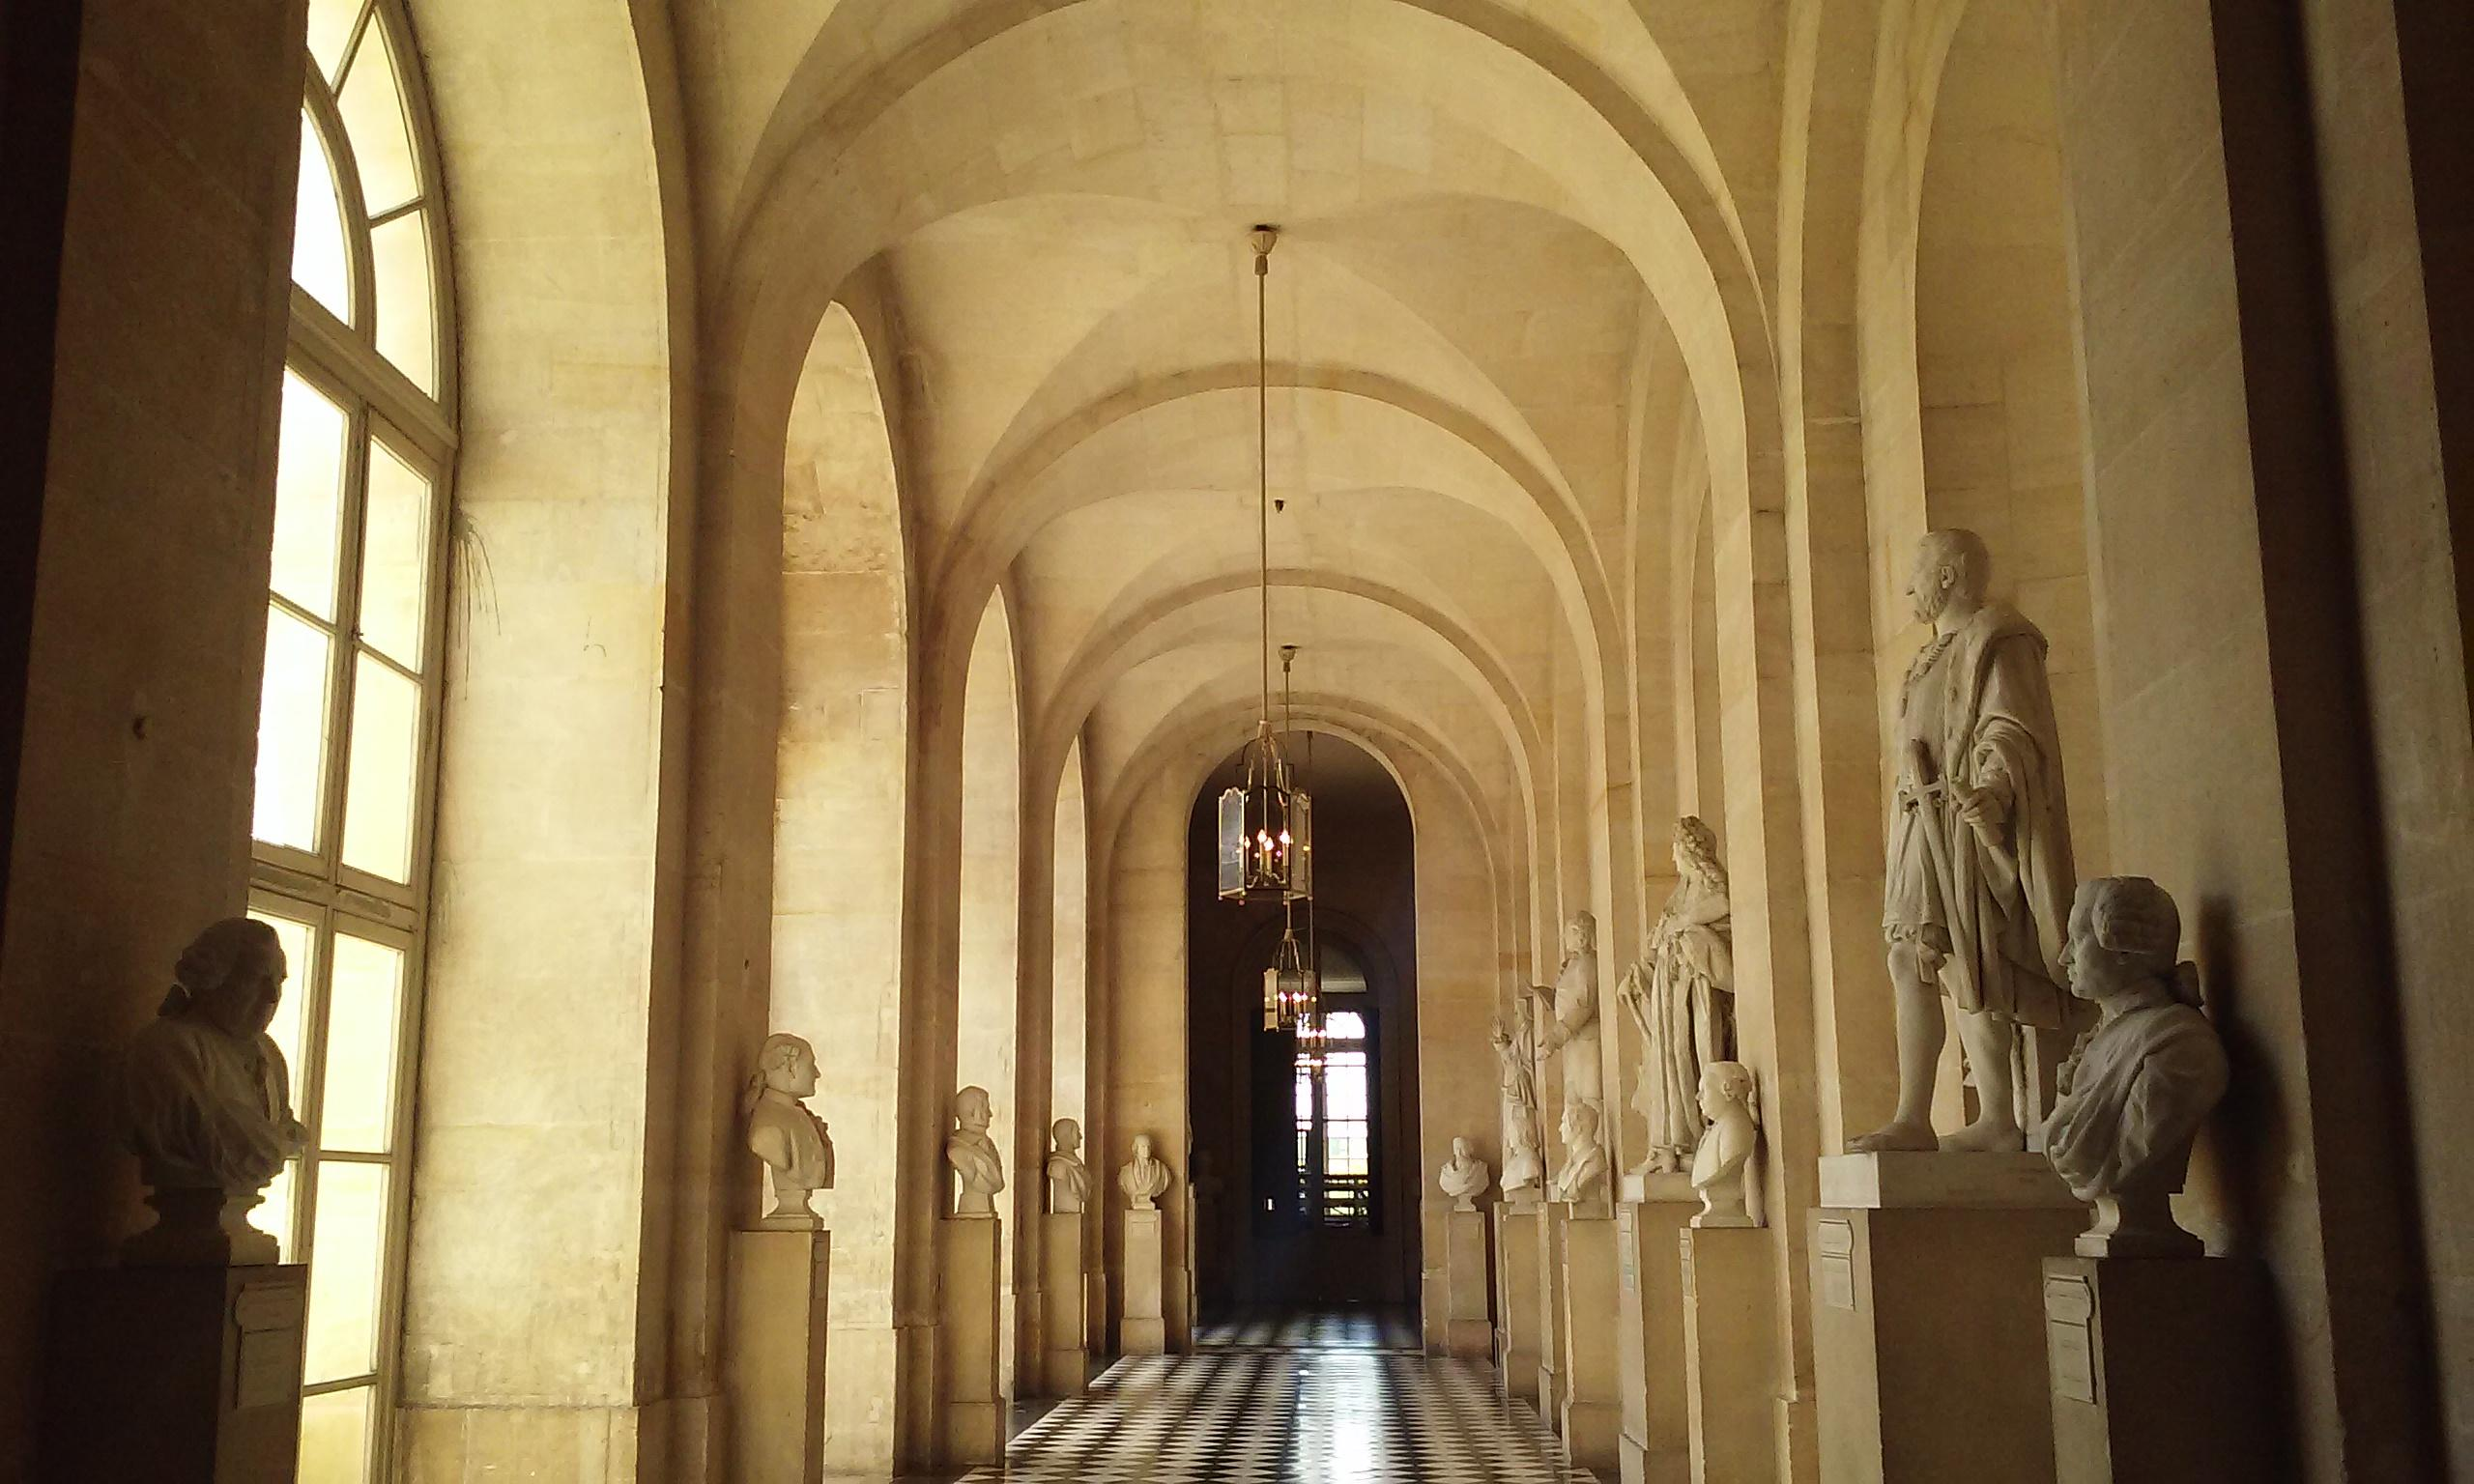 Hall of statues at Versailles. Includes statues of Kings and philosophers.